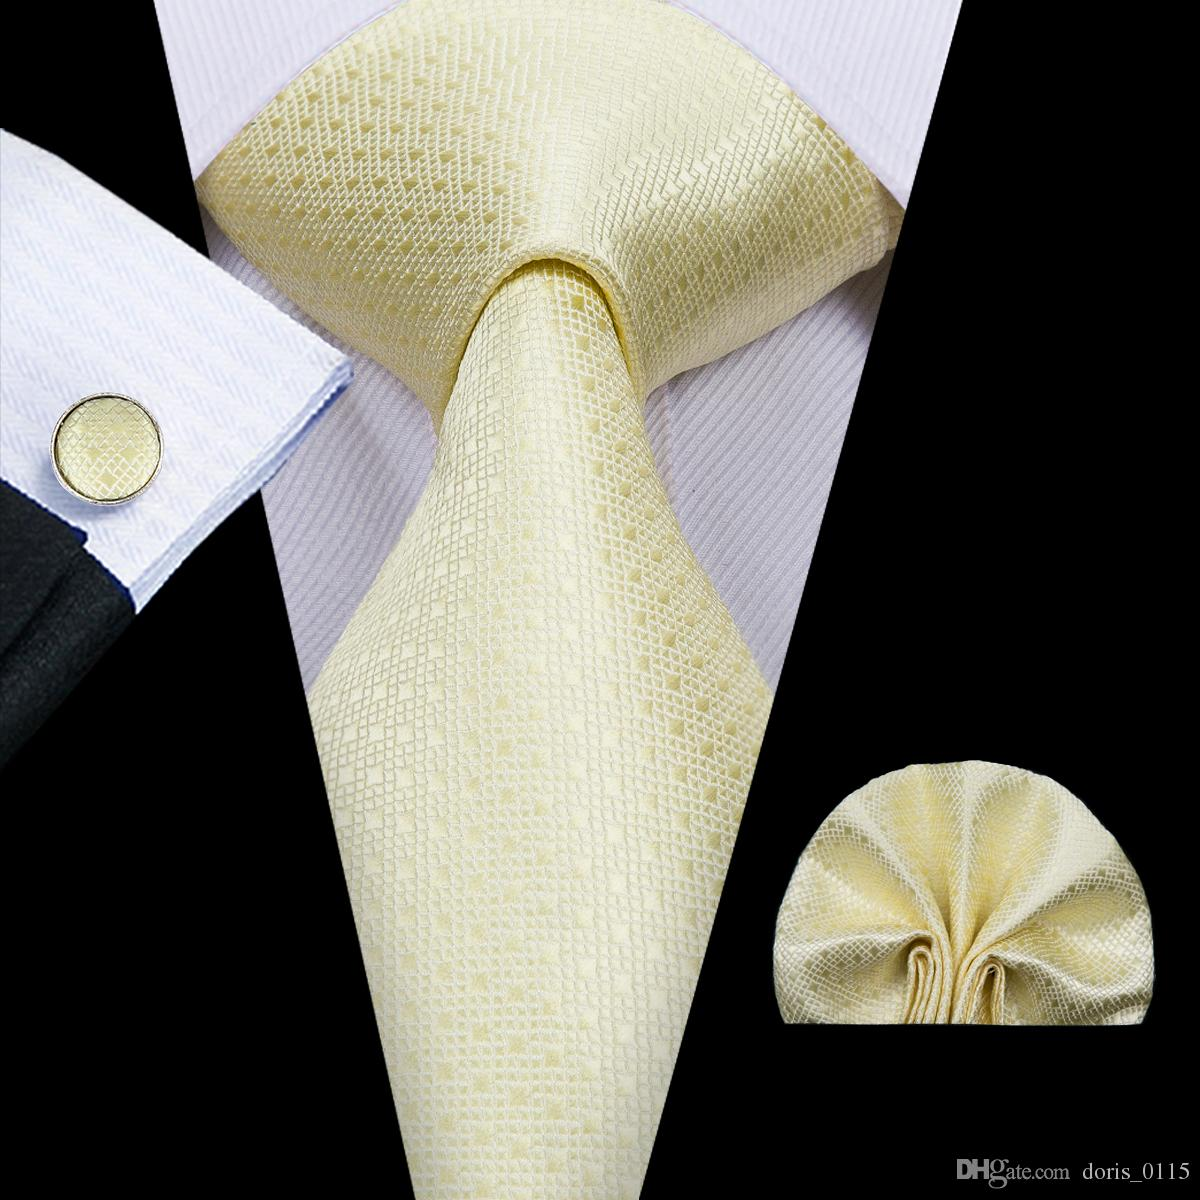 Mens Tie Pocket Square Cufflinks Mens gold solid color tie set 8.5cm Width Meeting Business Casual Party Necktie Jacquard Woven N-3033